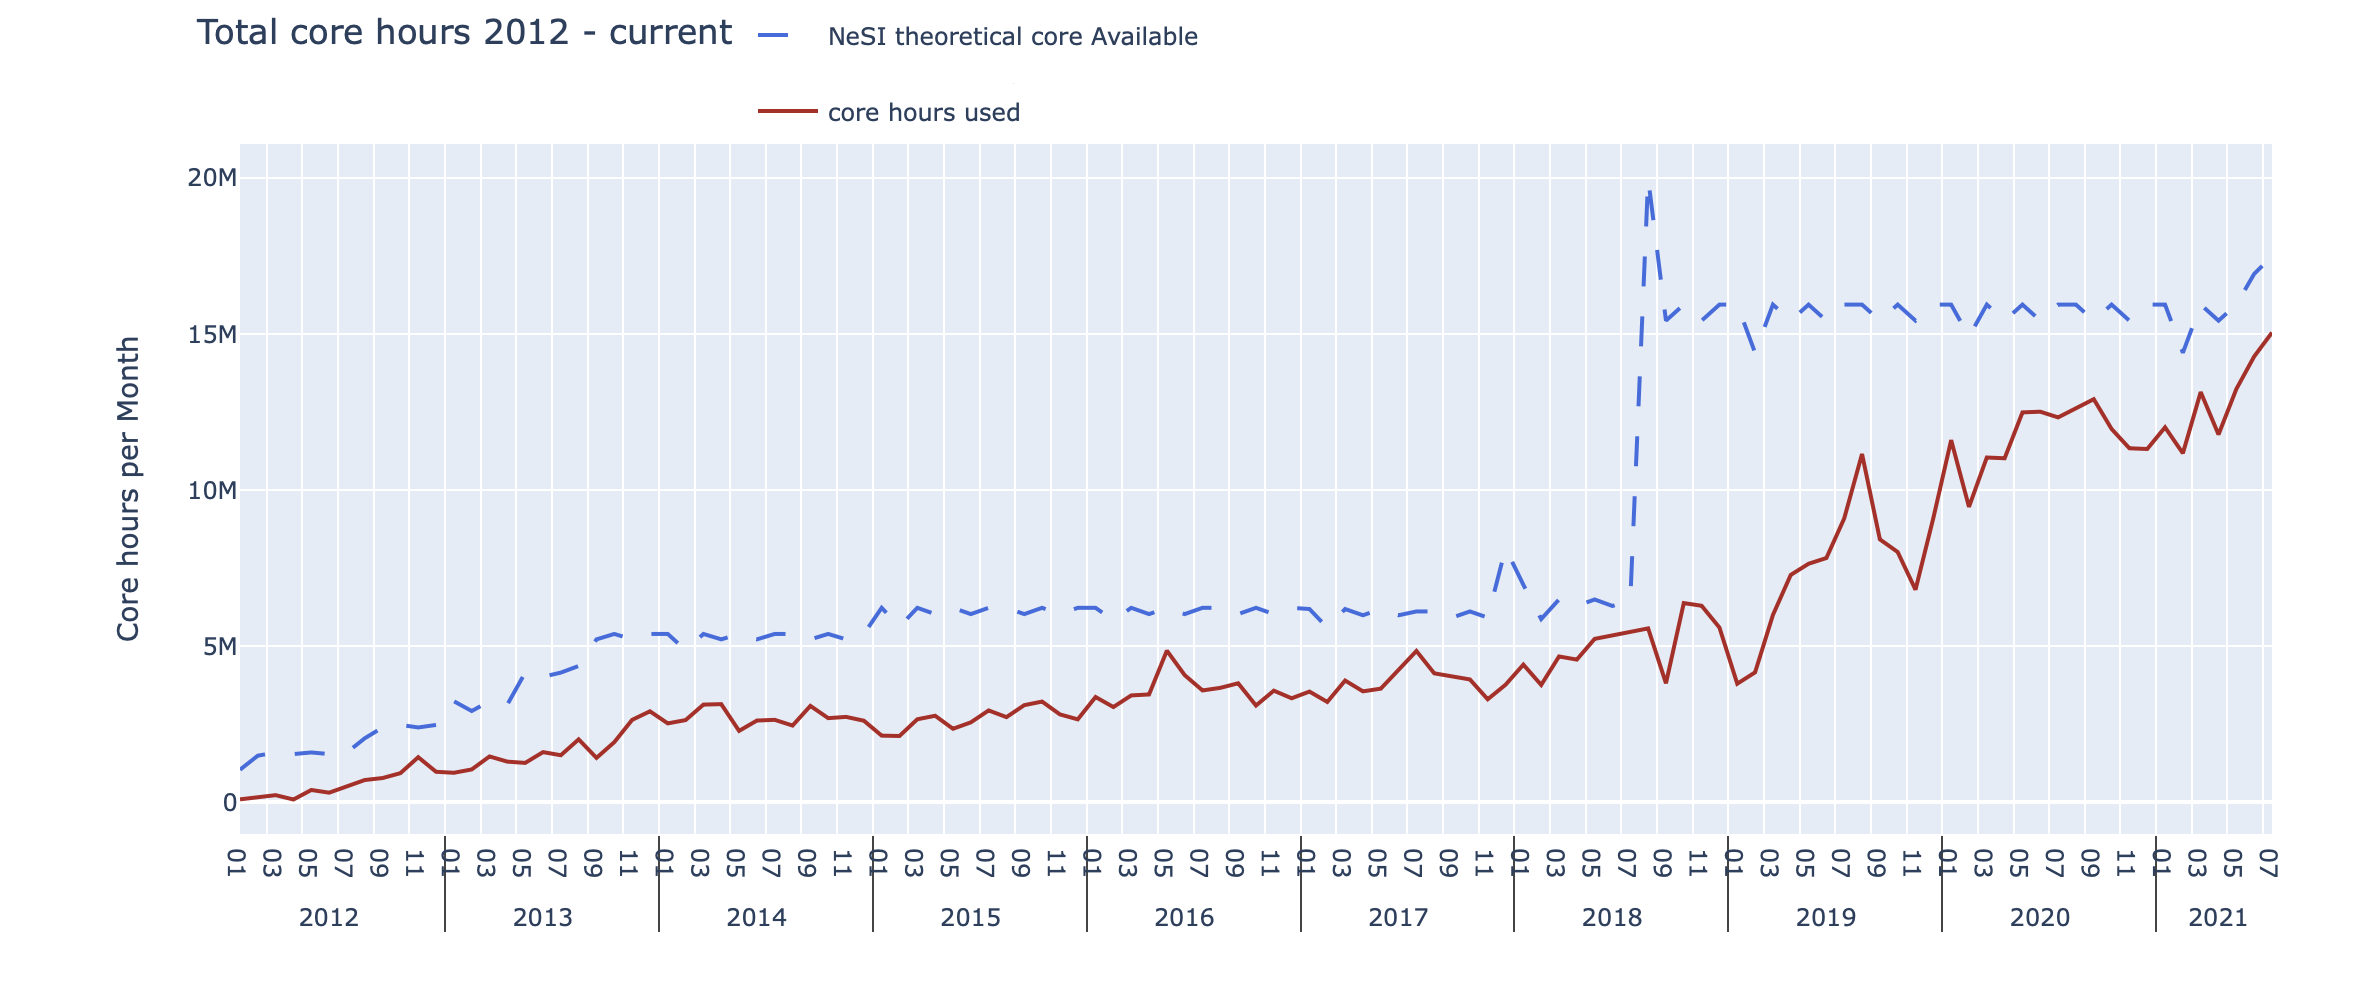 chart showing a peak usage of 15 million core hours in July 2021